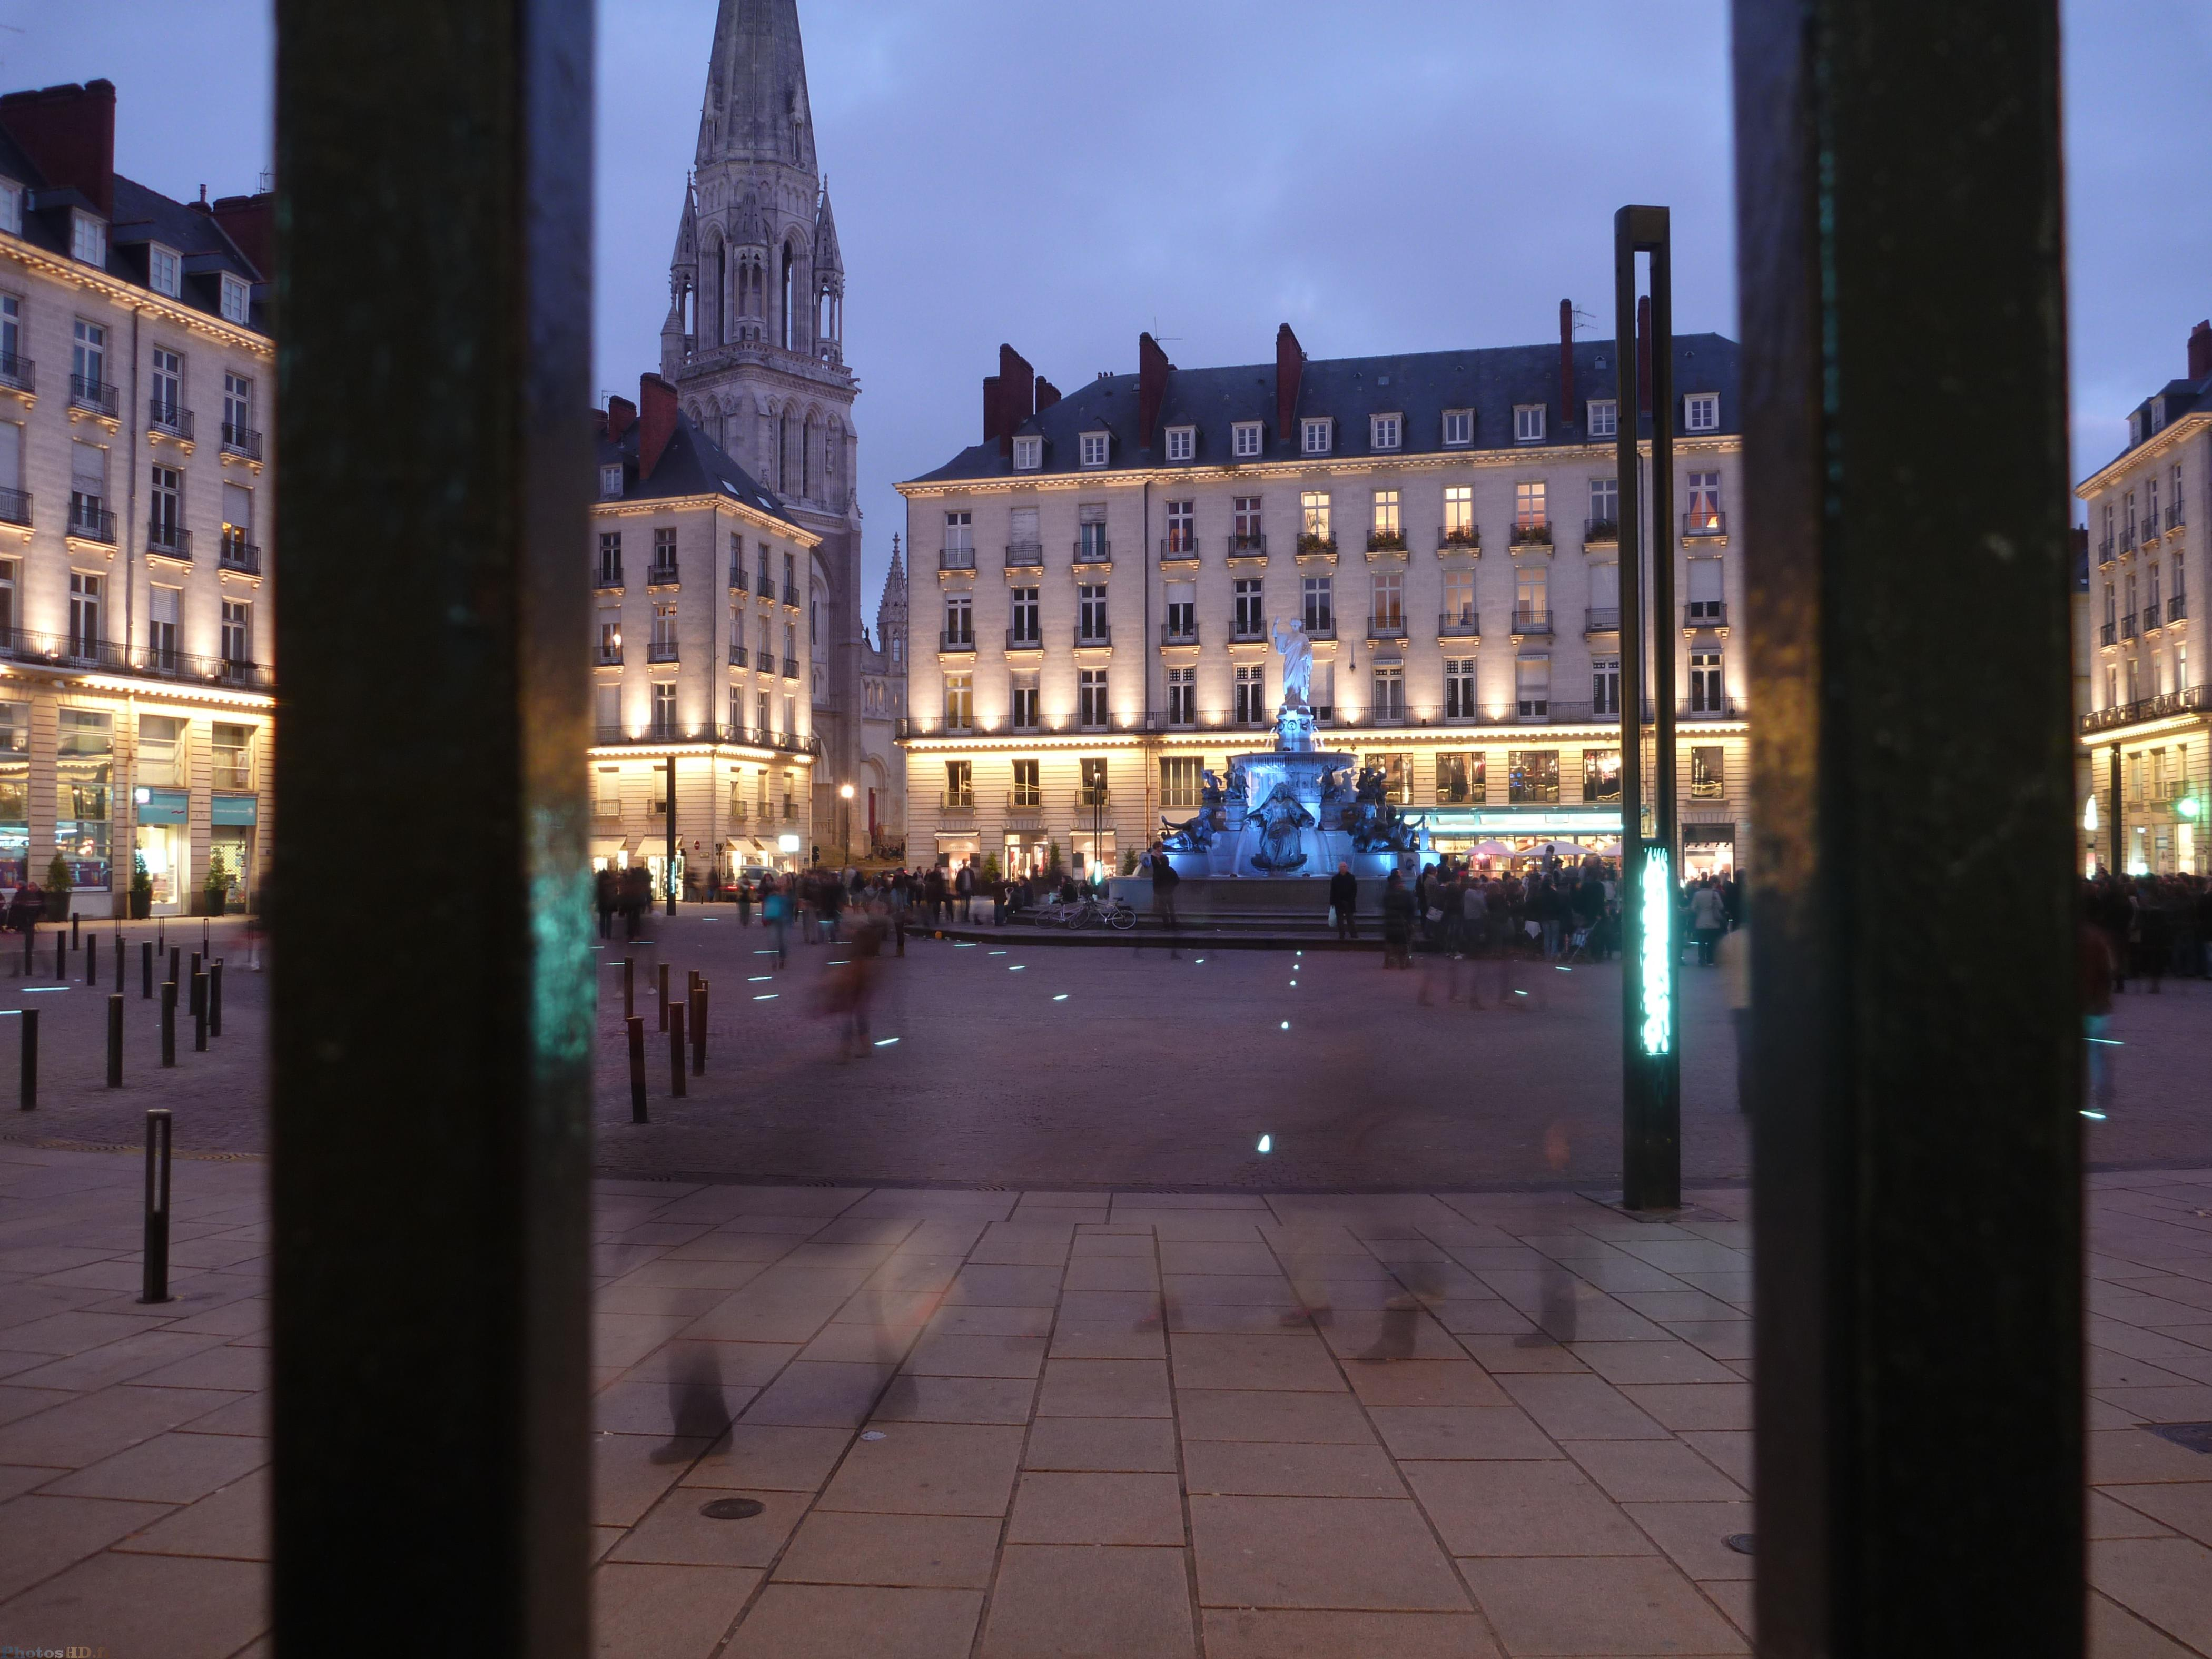 Place royal à Nantes